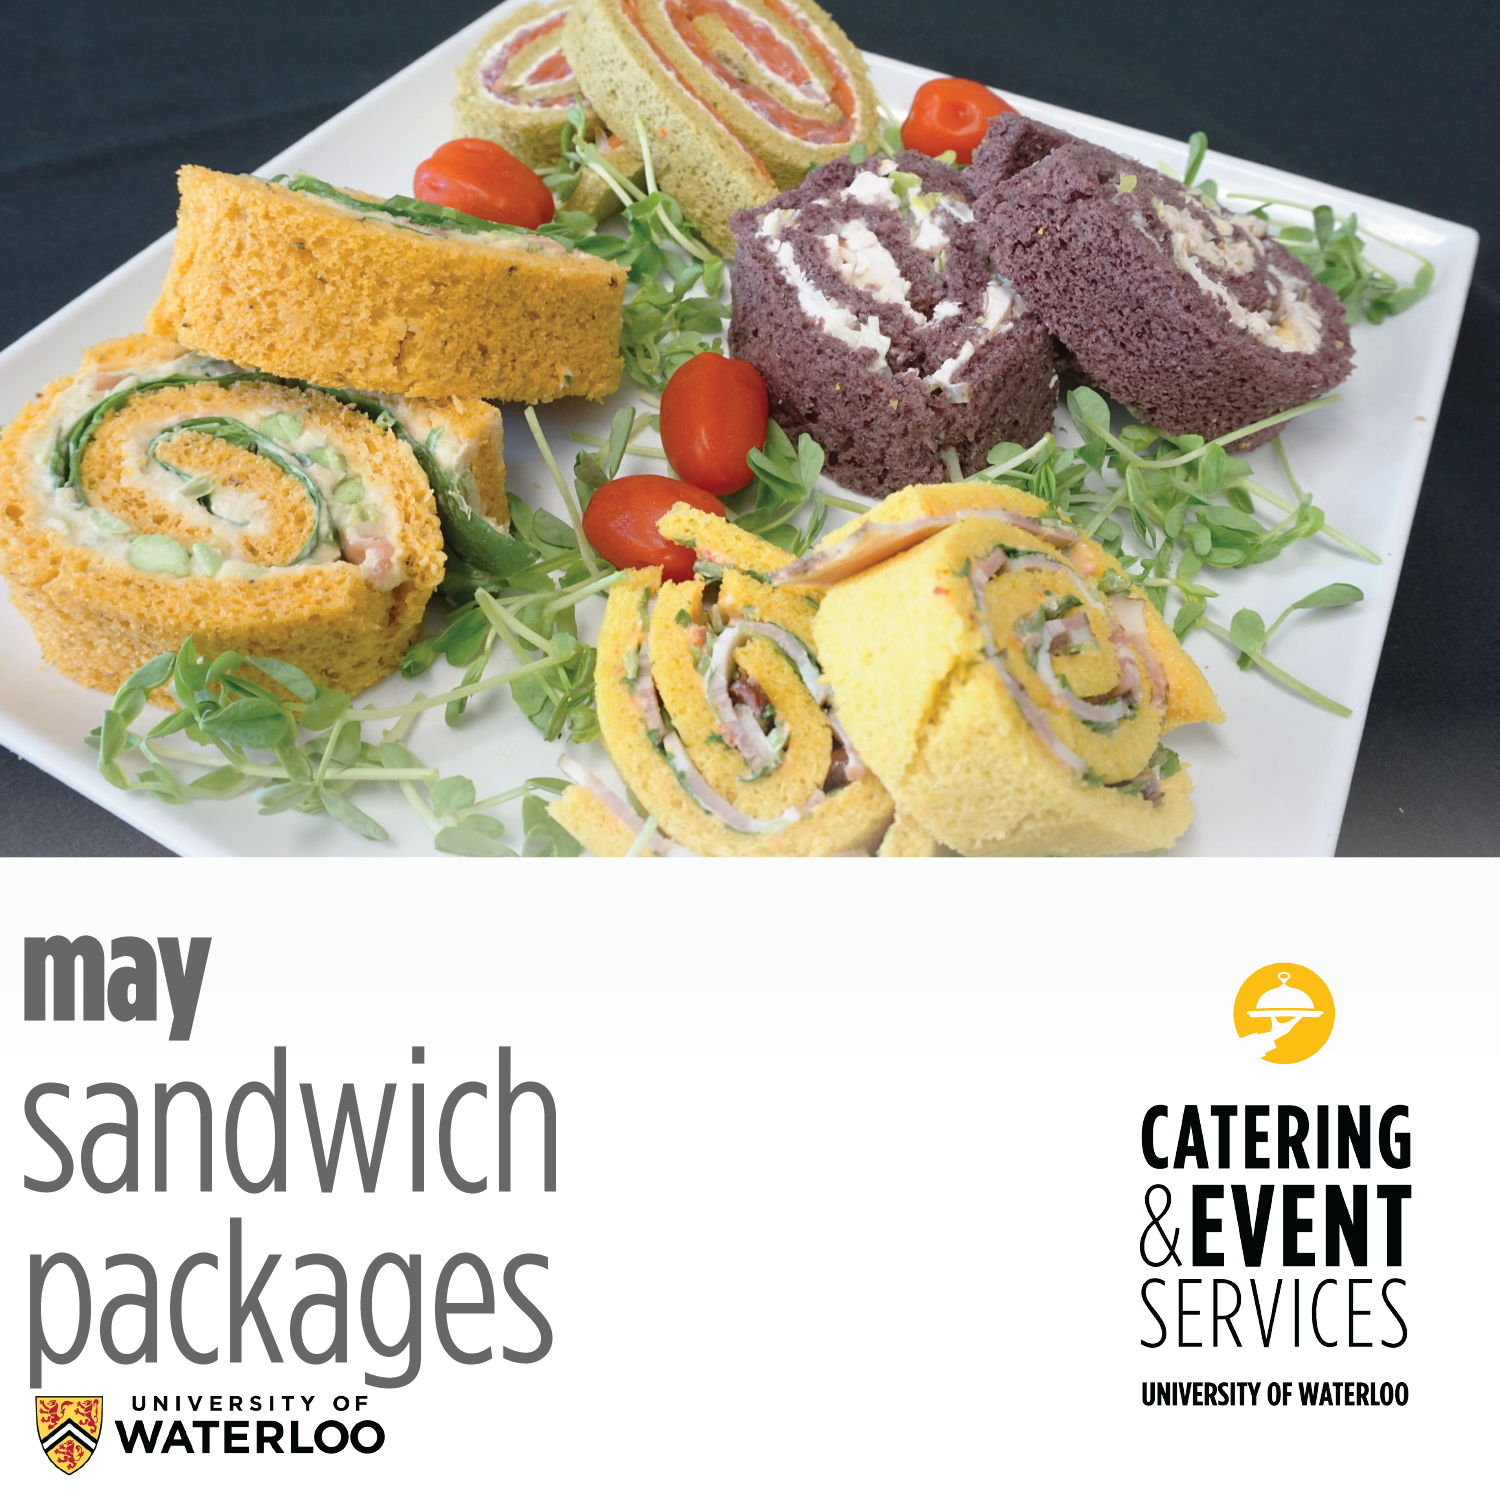 MAY SANDWICH FEATURE